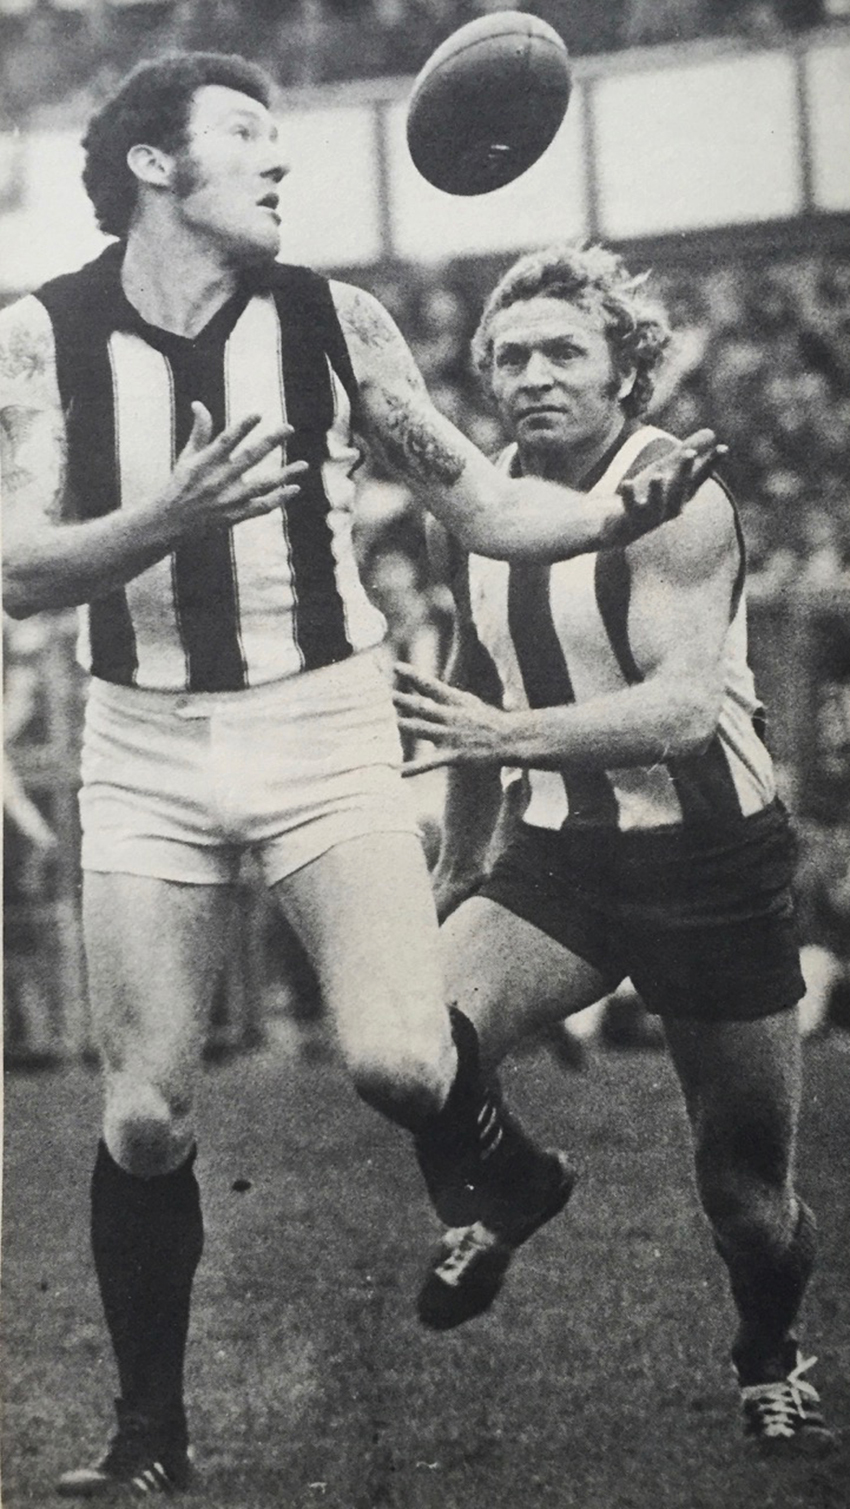 Grose paddles the ball ahead of North Melbourne's Barry Cable.